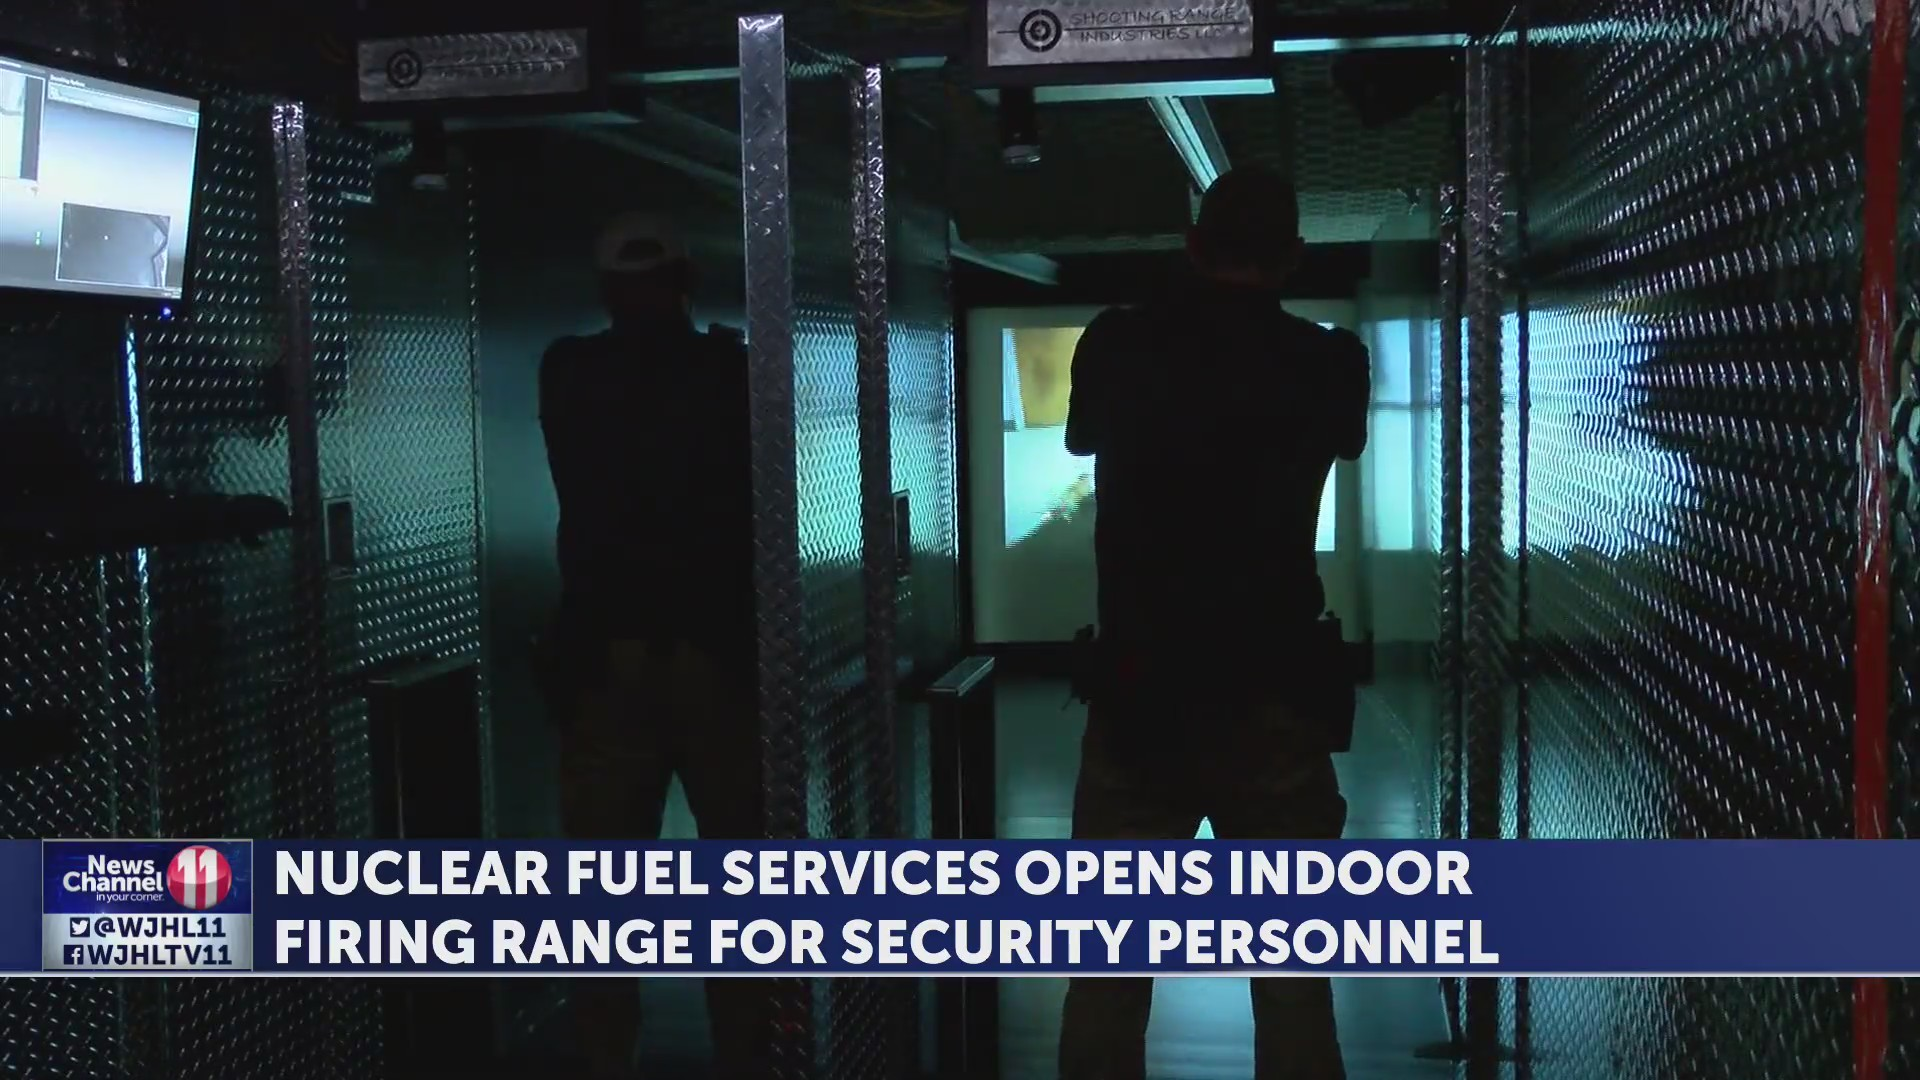 Nuclear Fuel Services opens indoor firing range for security personnel